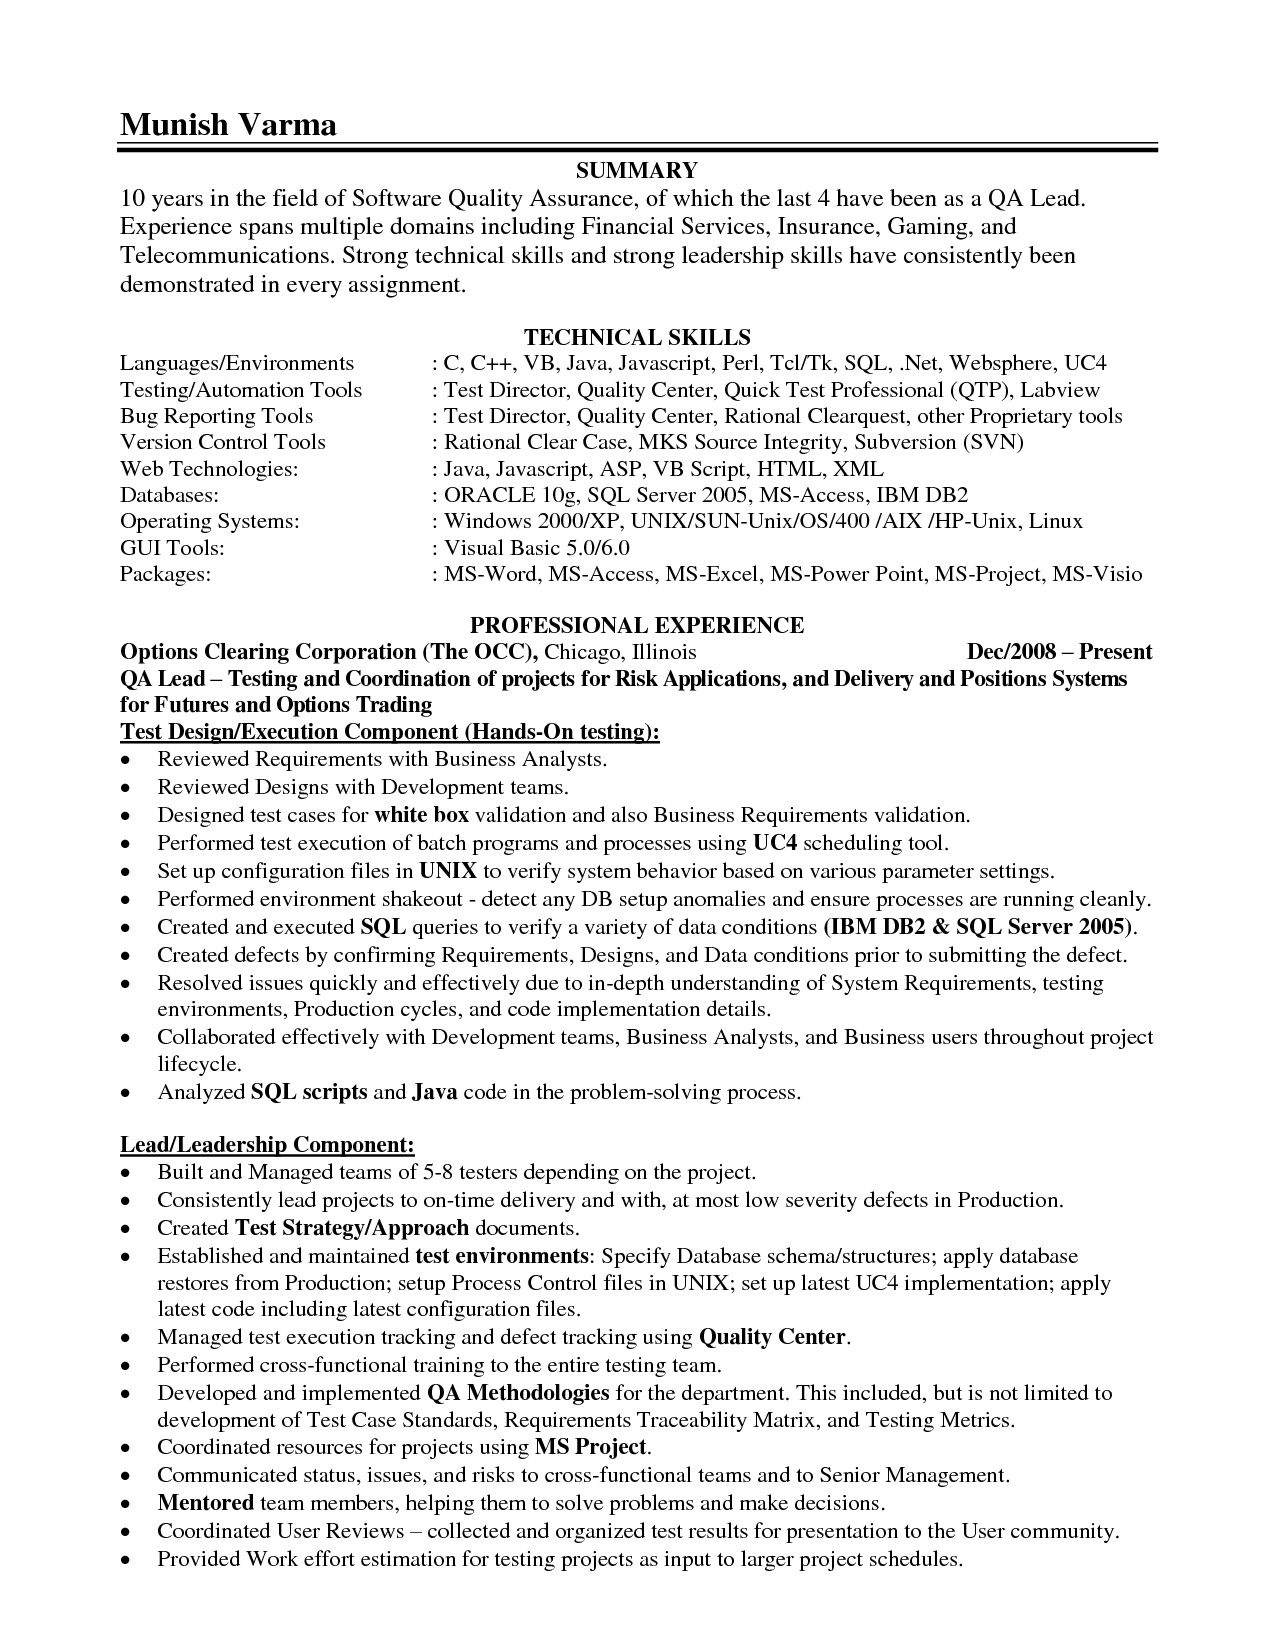 Project Management Skills Resume Leadership Skills On Resume  Sample Resume Center  Pinterest